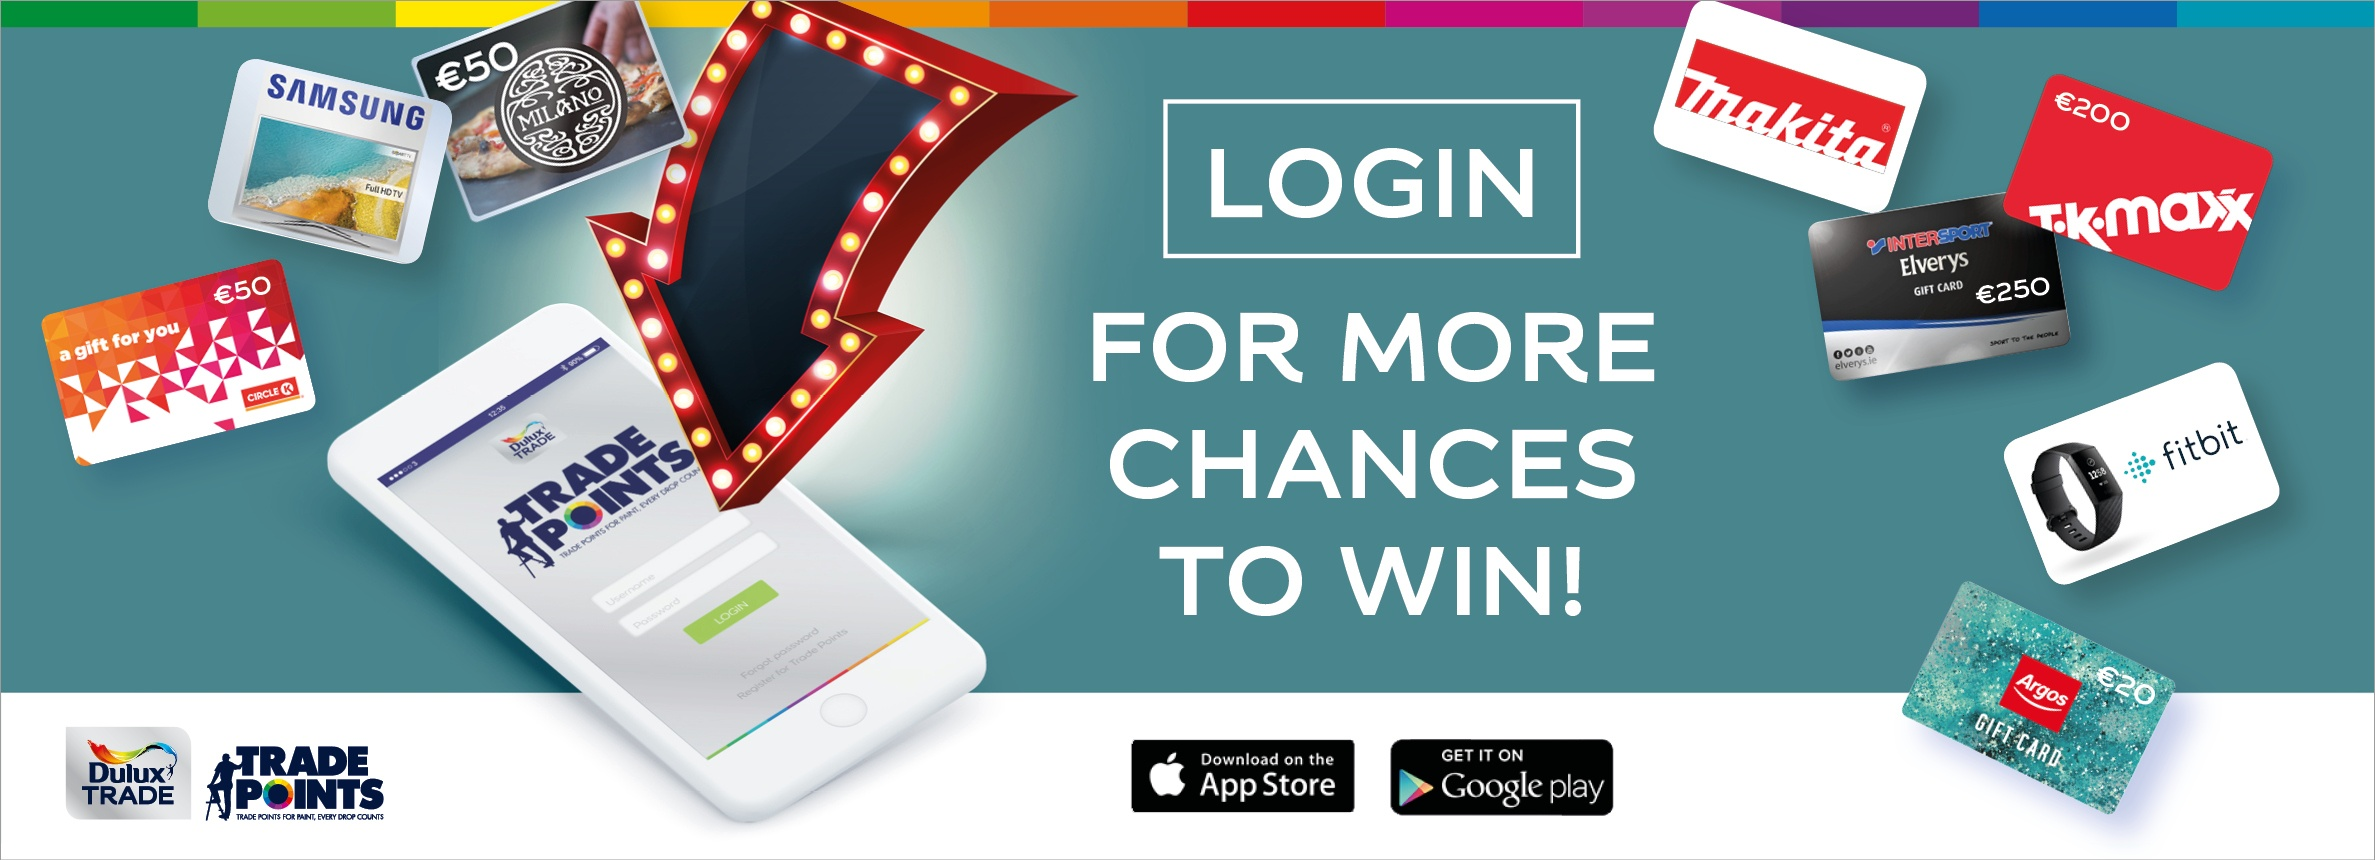 TradePoints_App_Campaign_1140x413